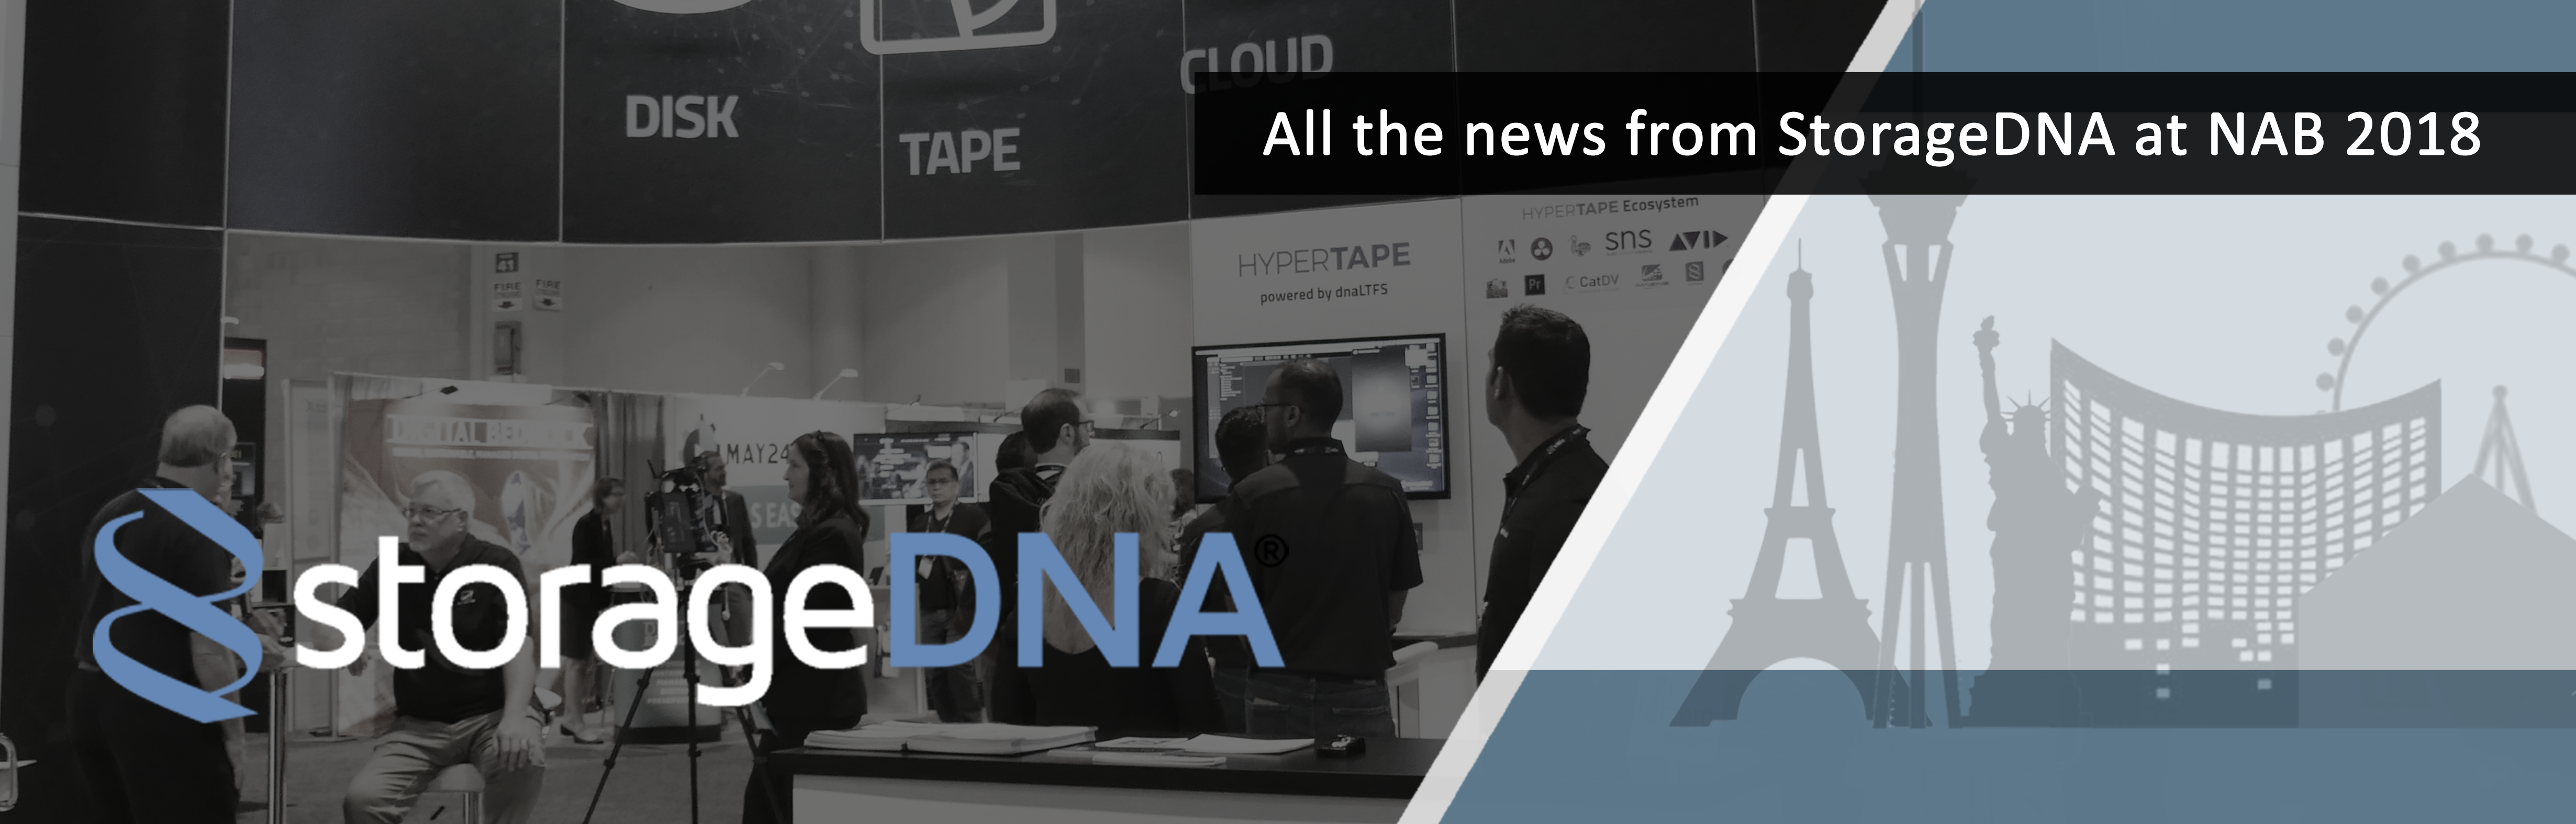 Post NAB 2018 News From StorageDNA_Header